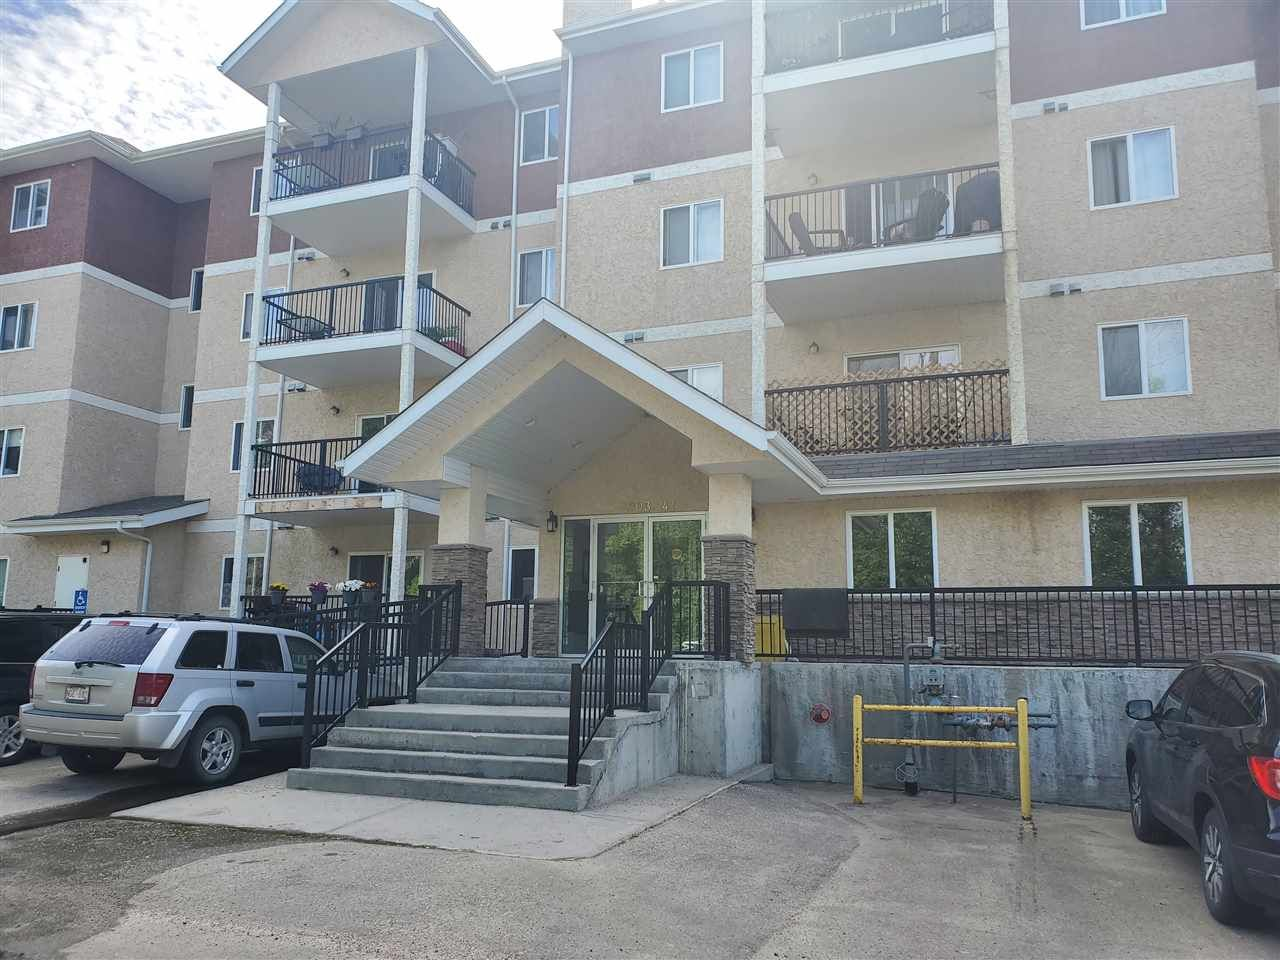 Main Photo: 101 4903 47 Avenue: Stony Plain Condo for sale : MLS®# E4234615